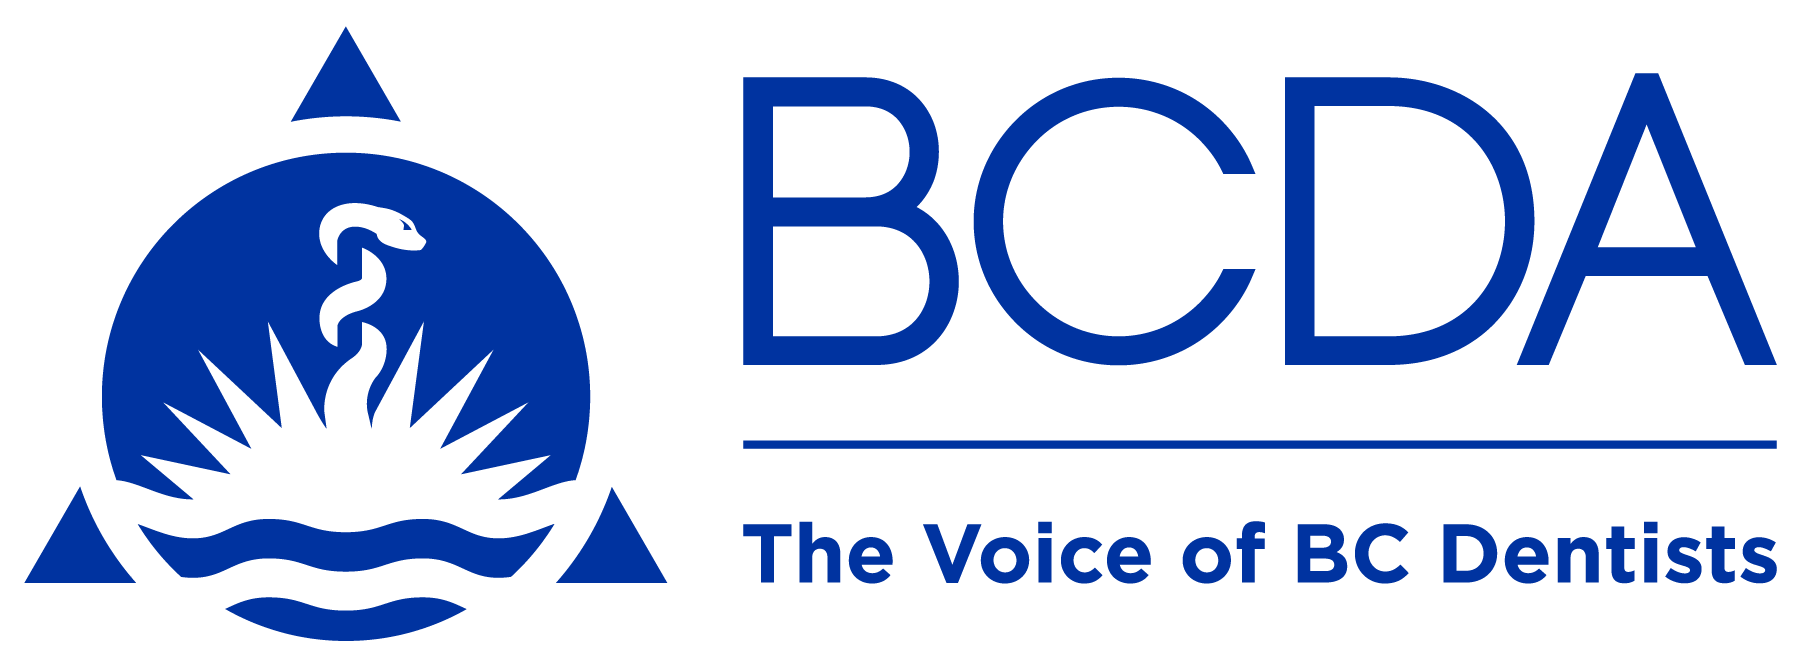 BCDA The Voice of BC Dentists